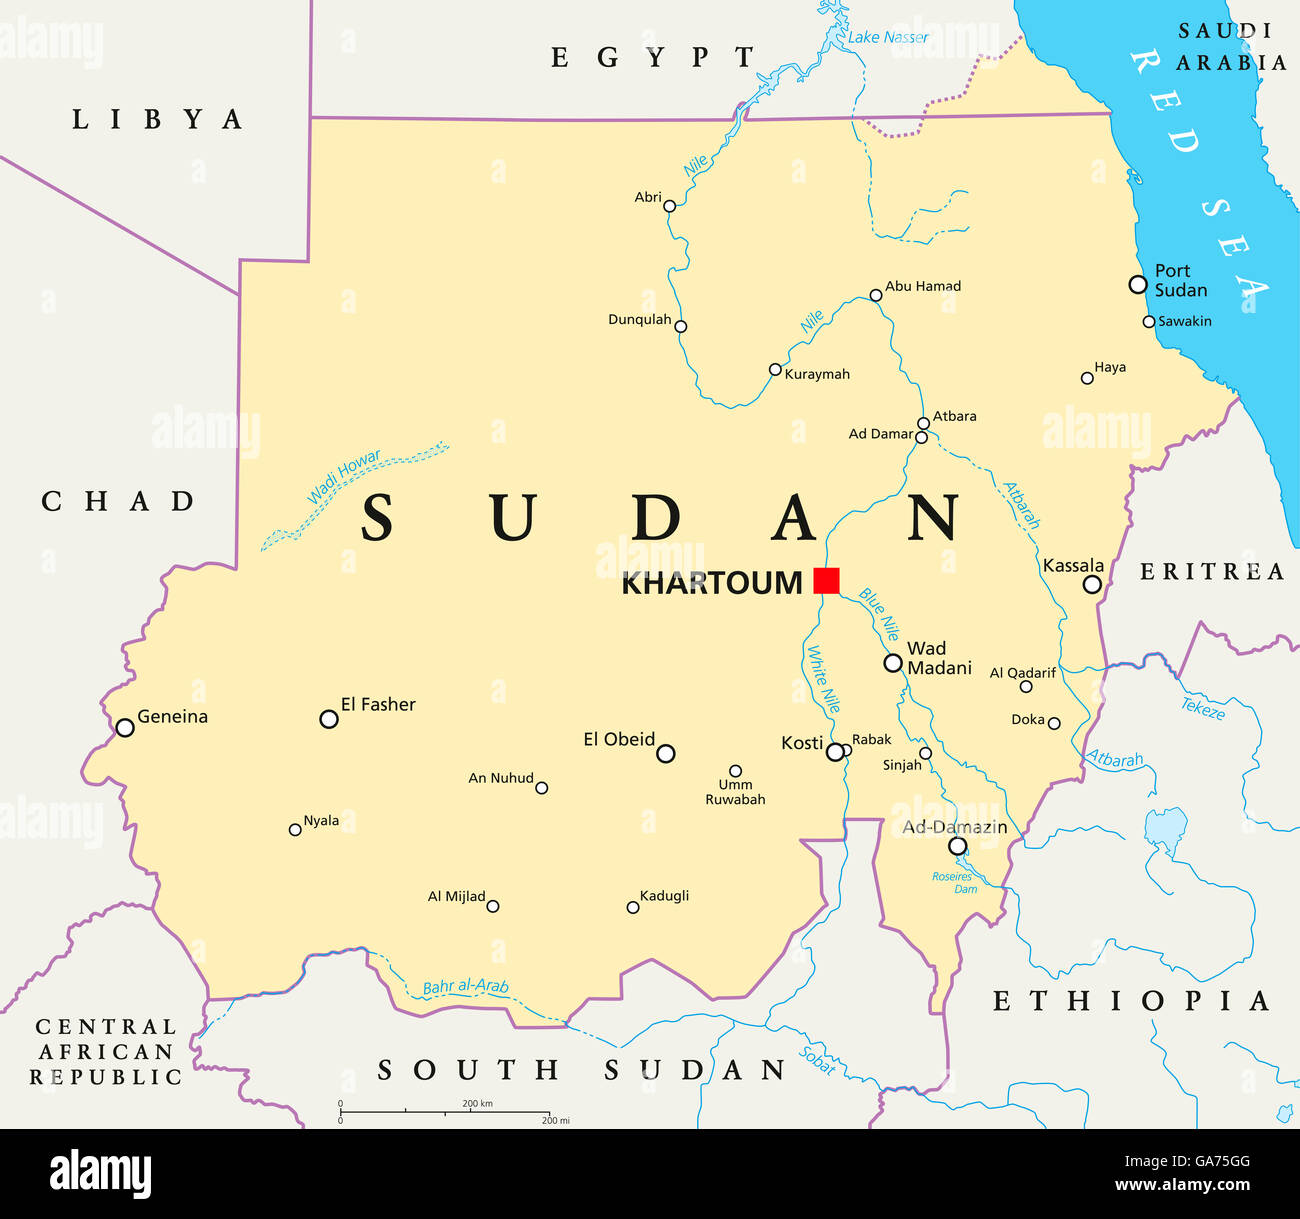 Sudan Political Map With Capital Khartoum National Borders Stock - Sudan map